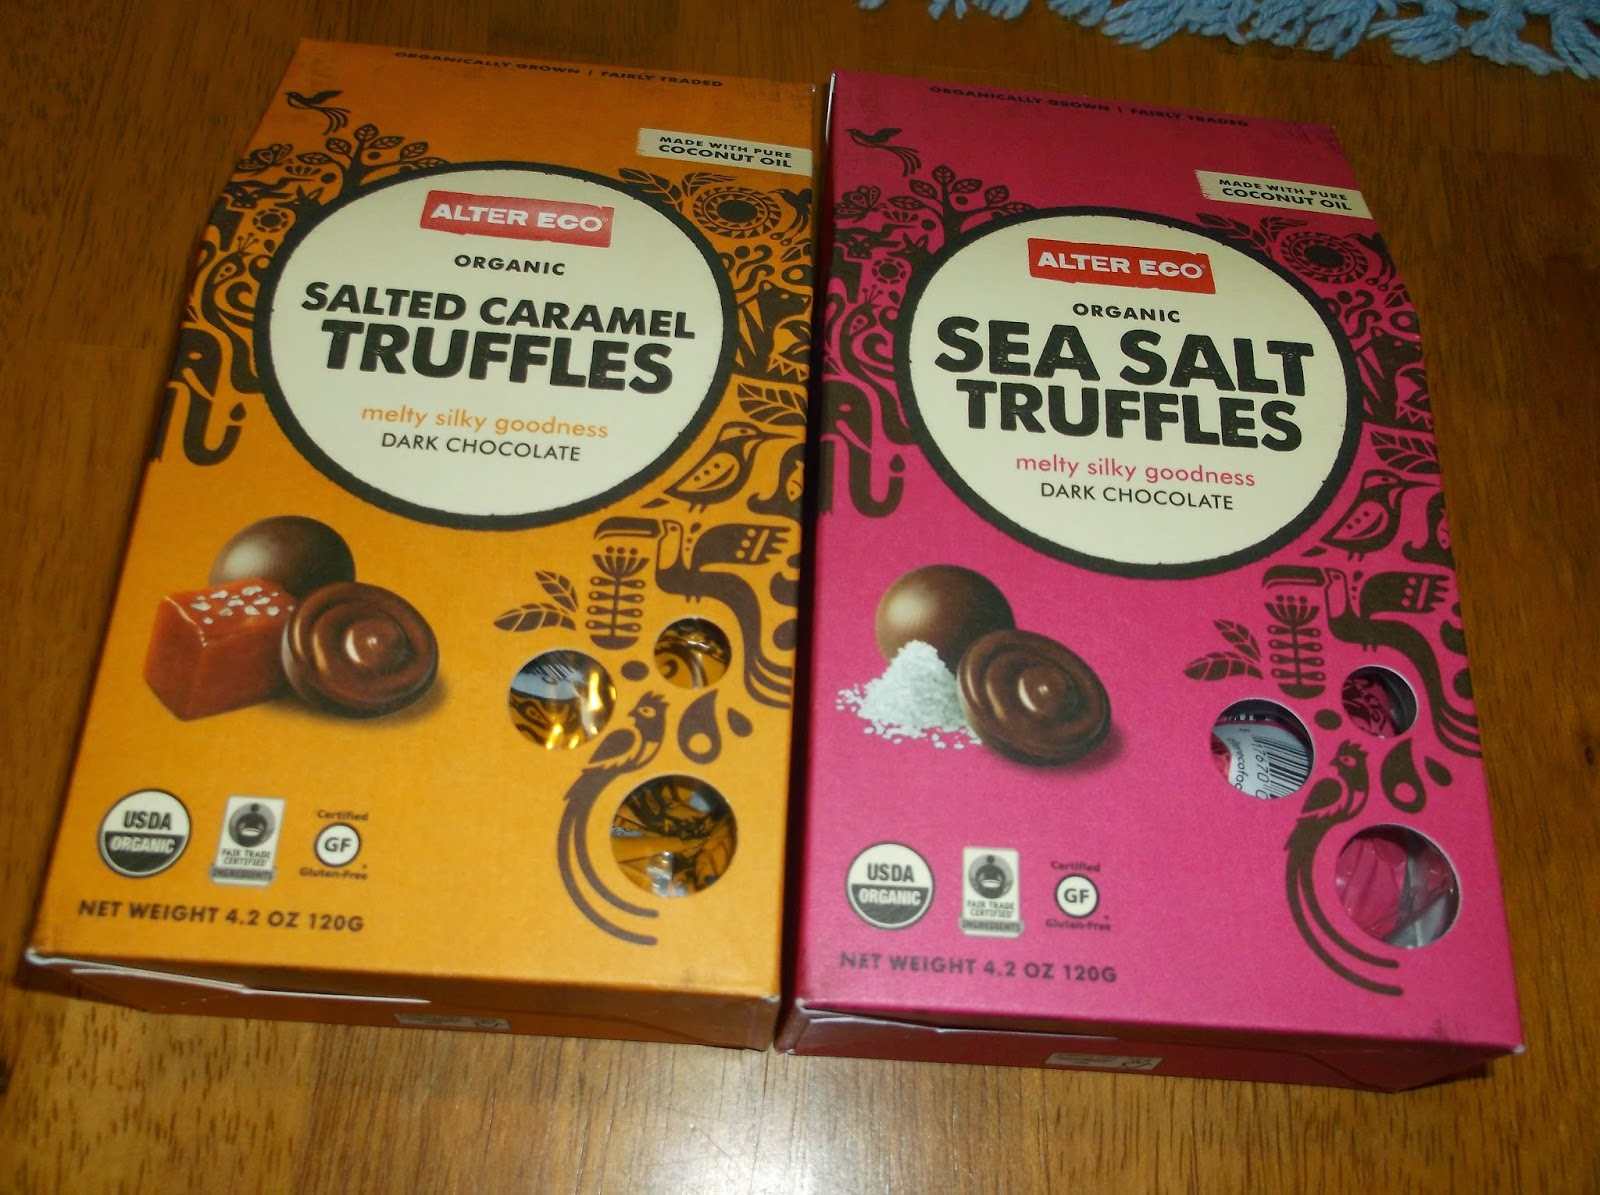 Missys Product Reviews : Alter Eco Organic Truffles Easter Gift ...